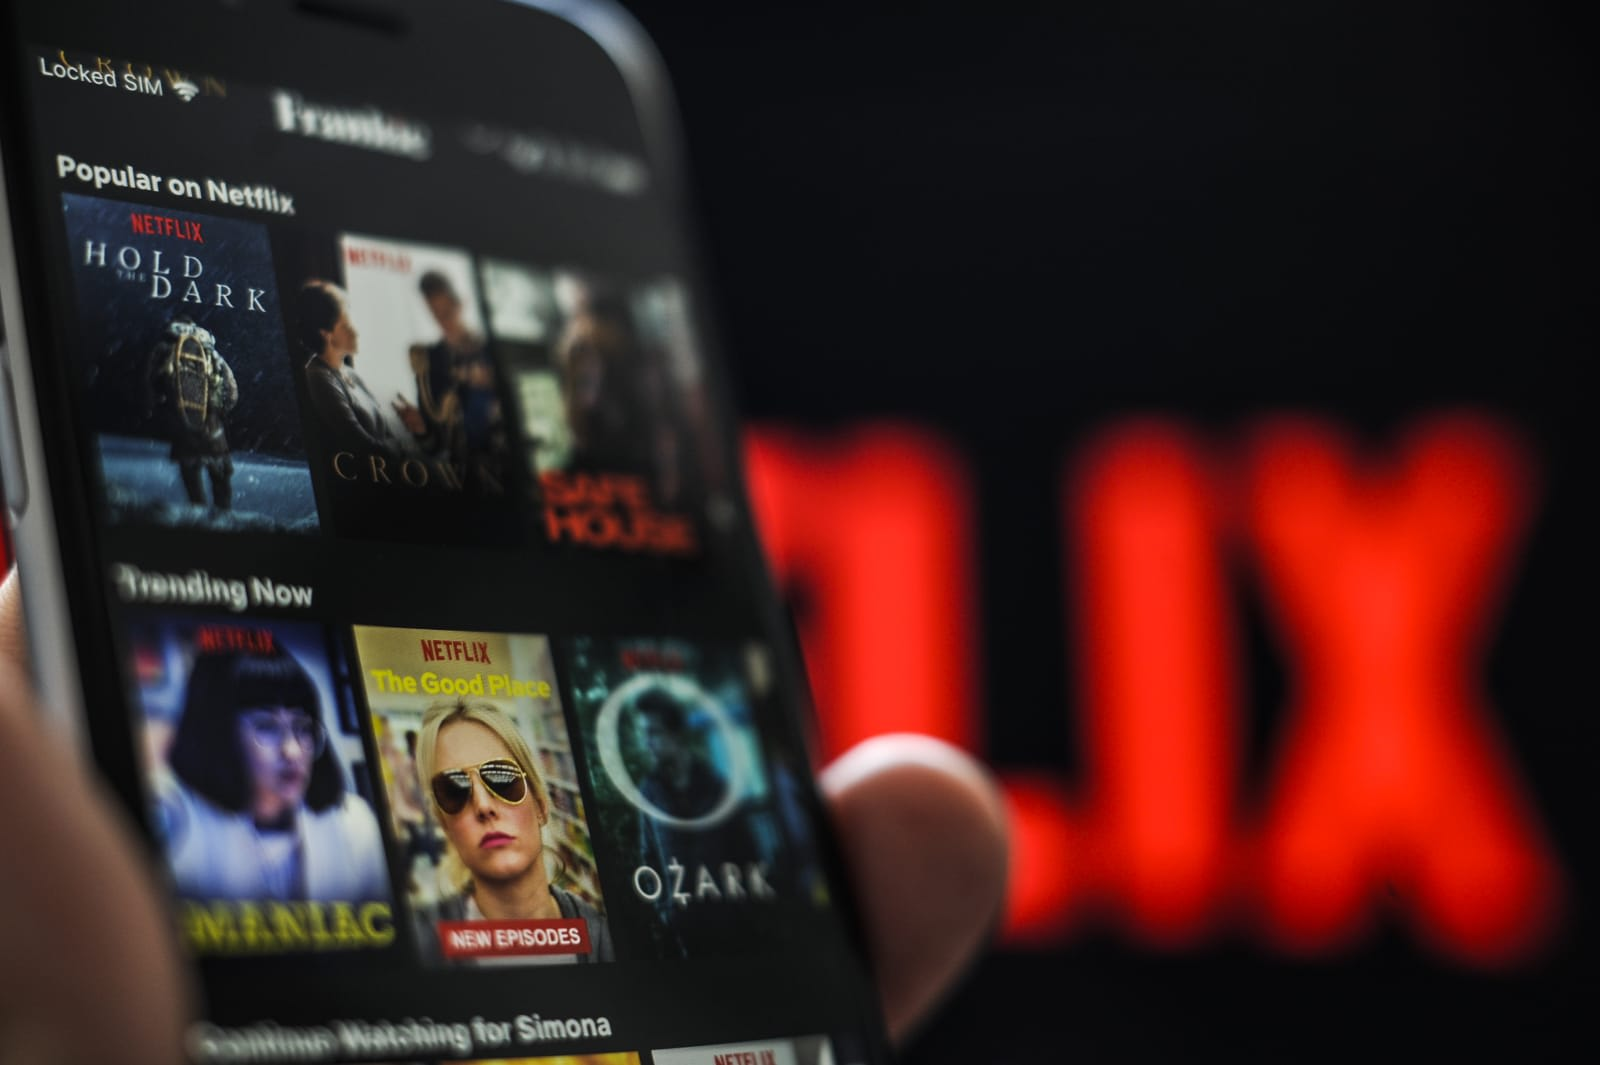 Netflix tests an Instagram-style scrolling feed in its